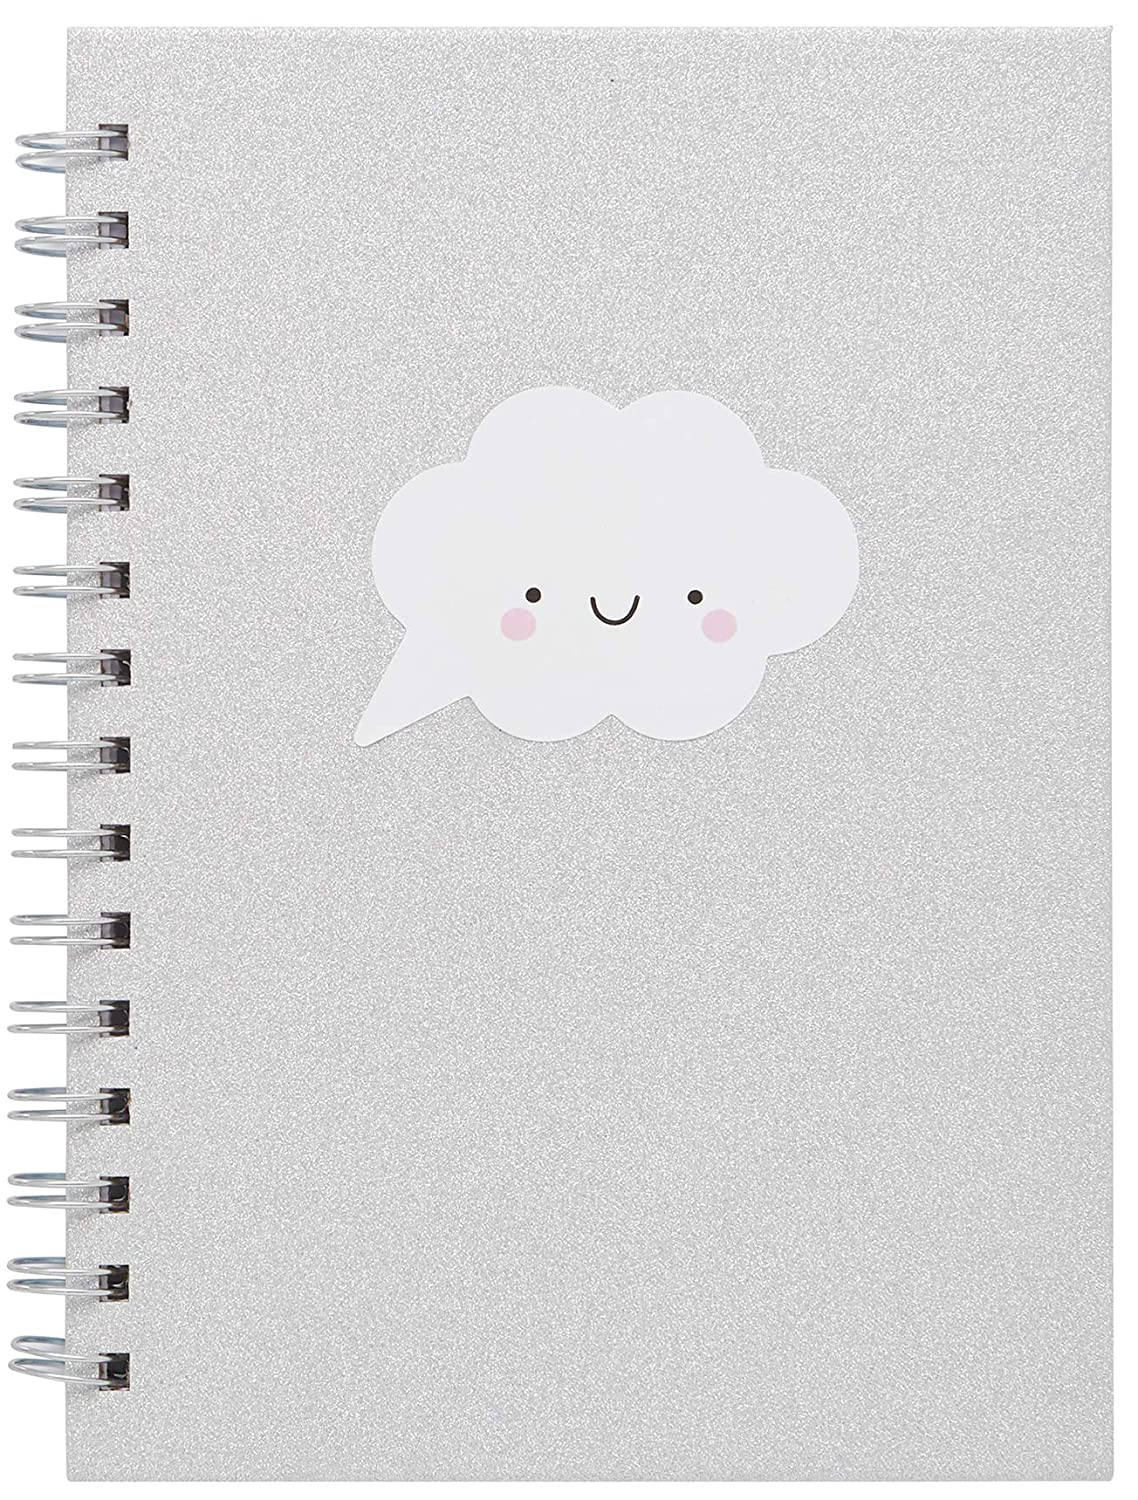 Laurdiy Sparkle Kawaii Collection Cute Notebooks For School 160 Ruled Pages